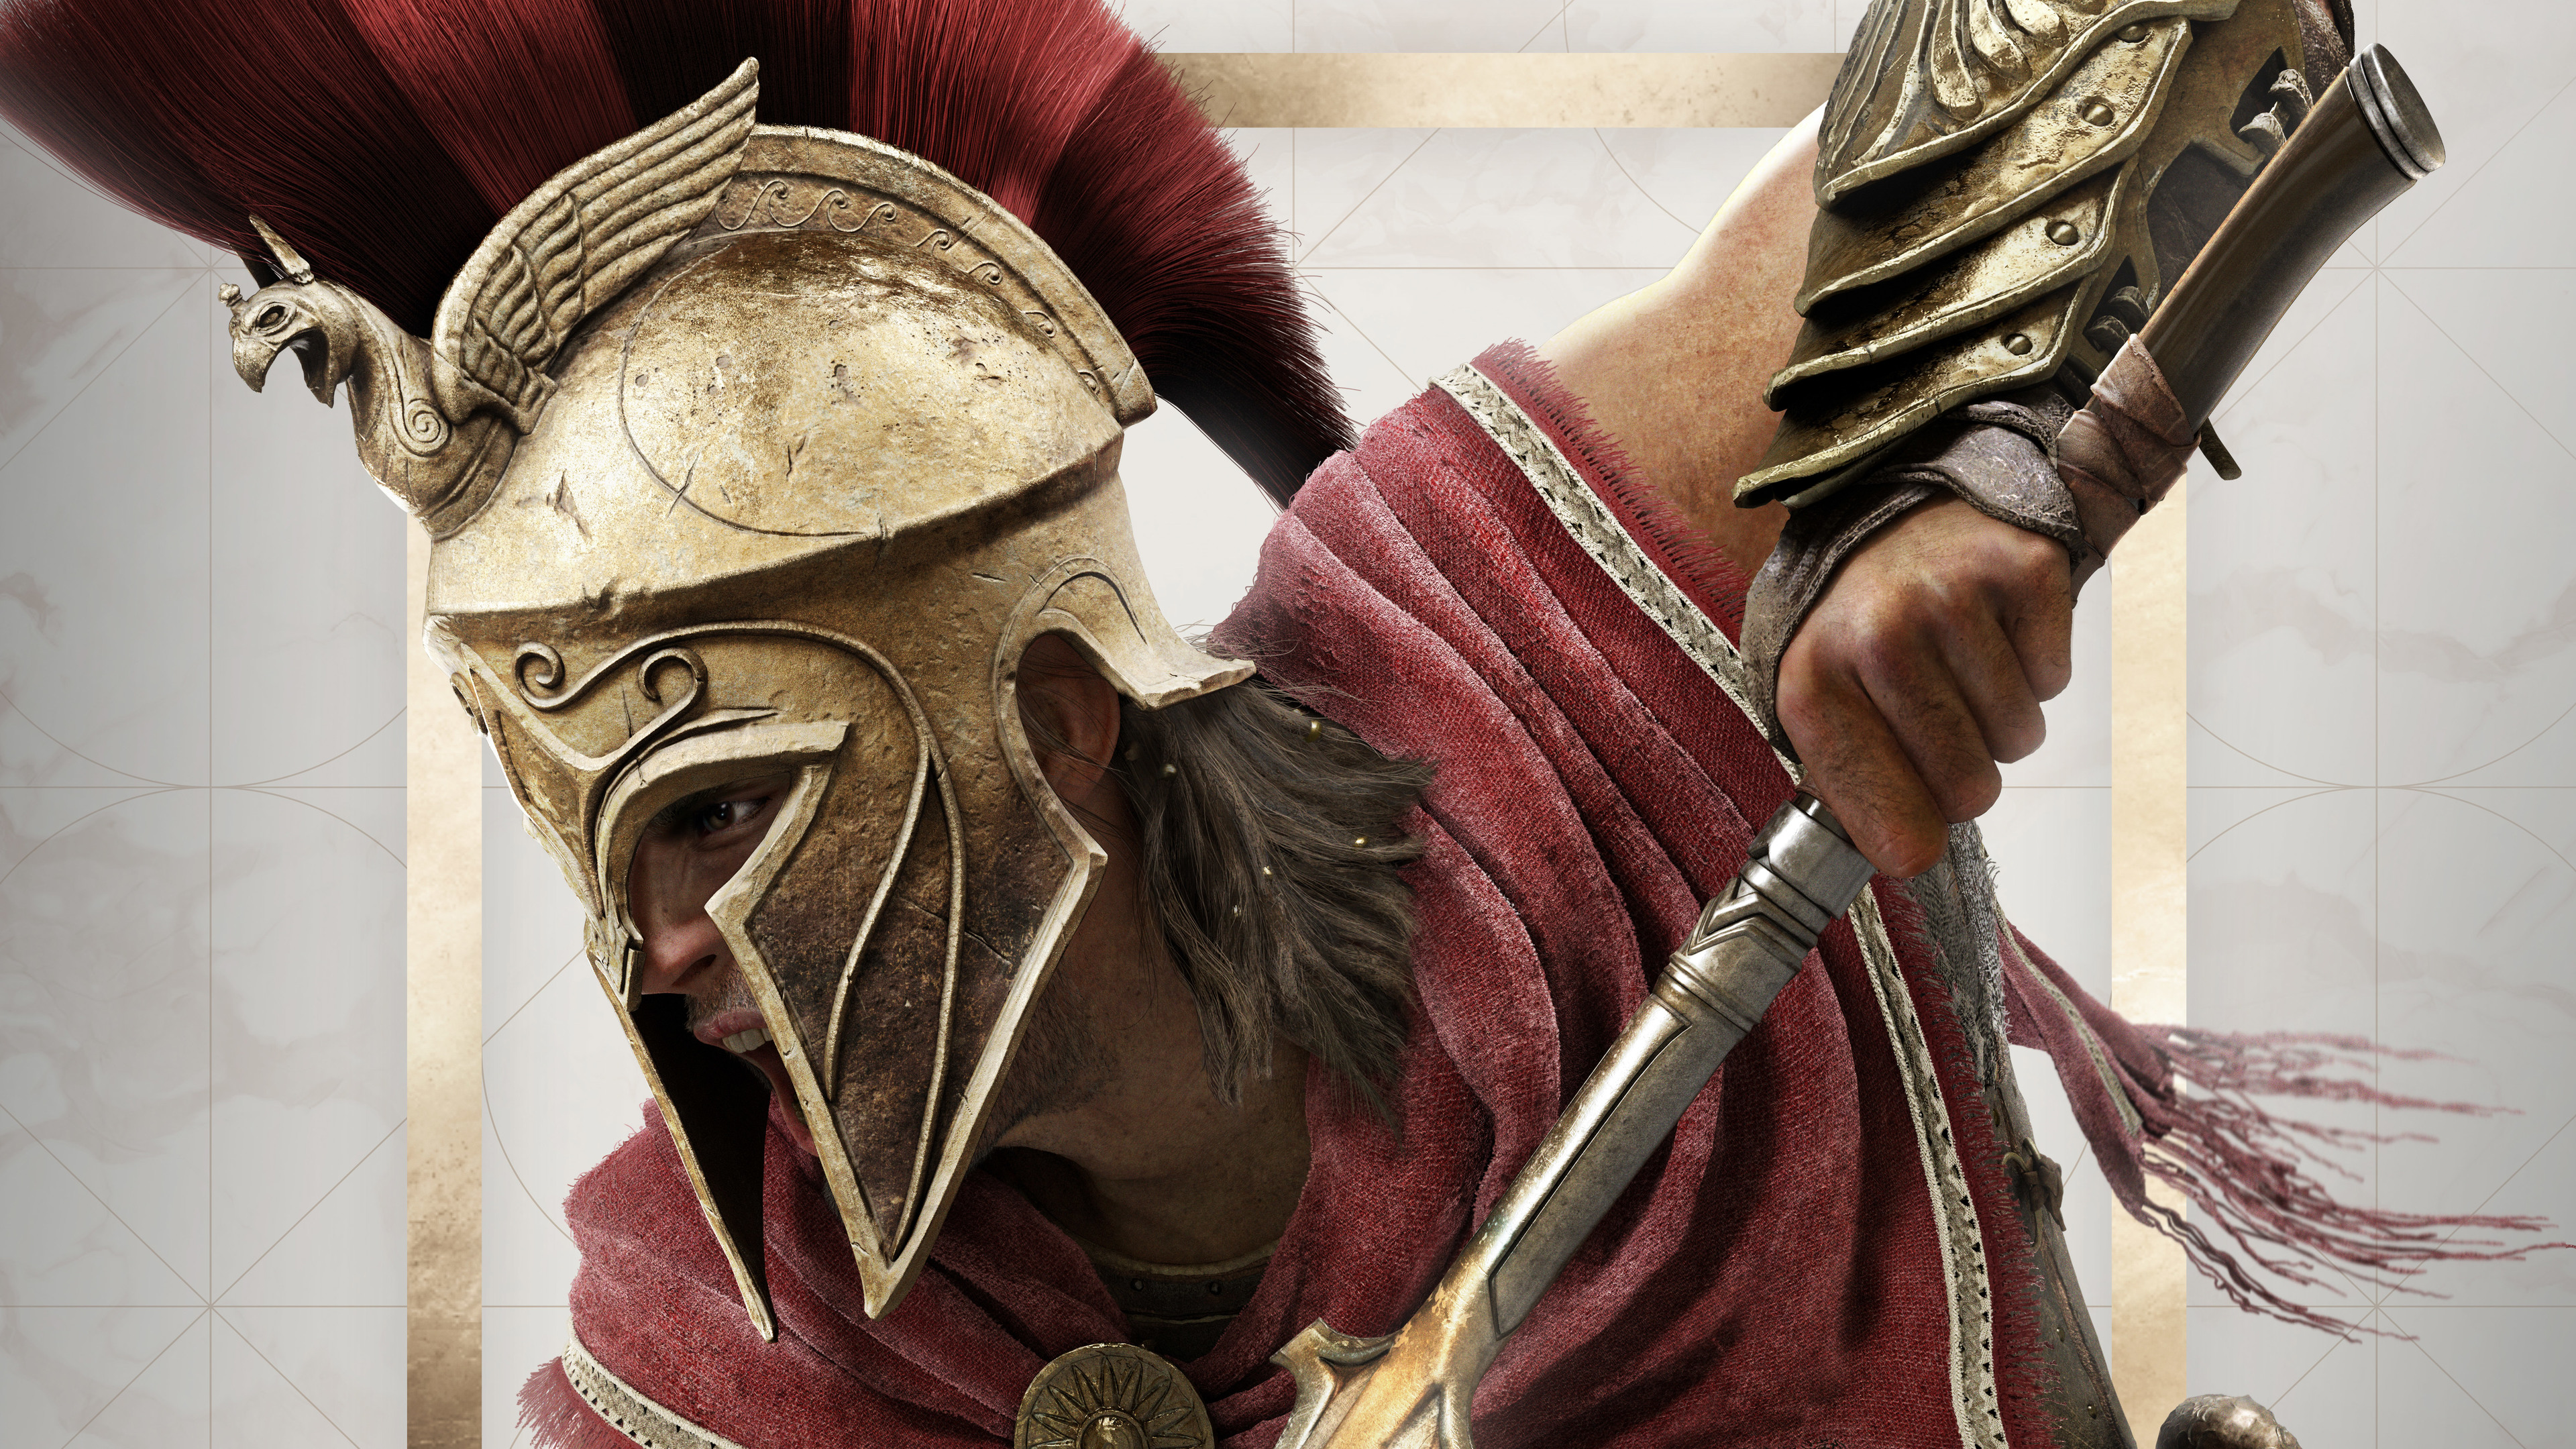 Wallpaper 4k Assassins Creed Odyssey Alexios Action 5k 2018 Games